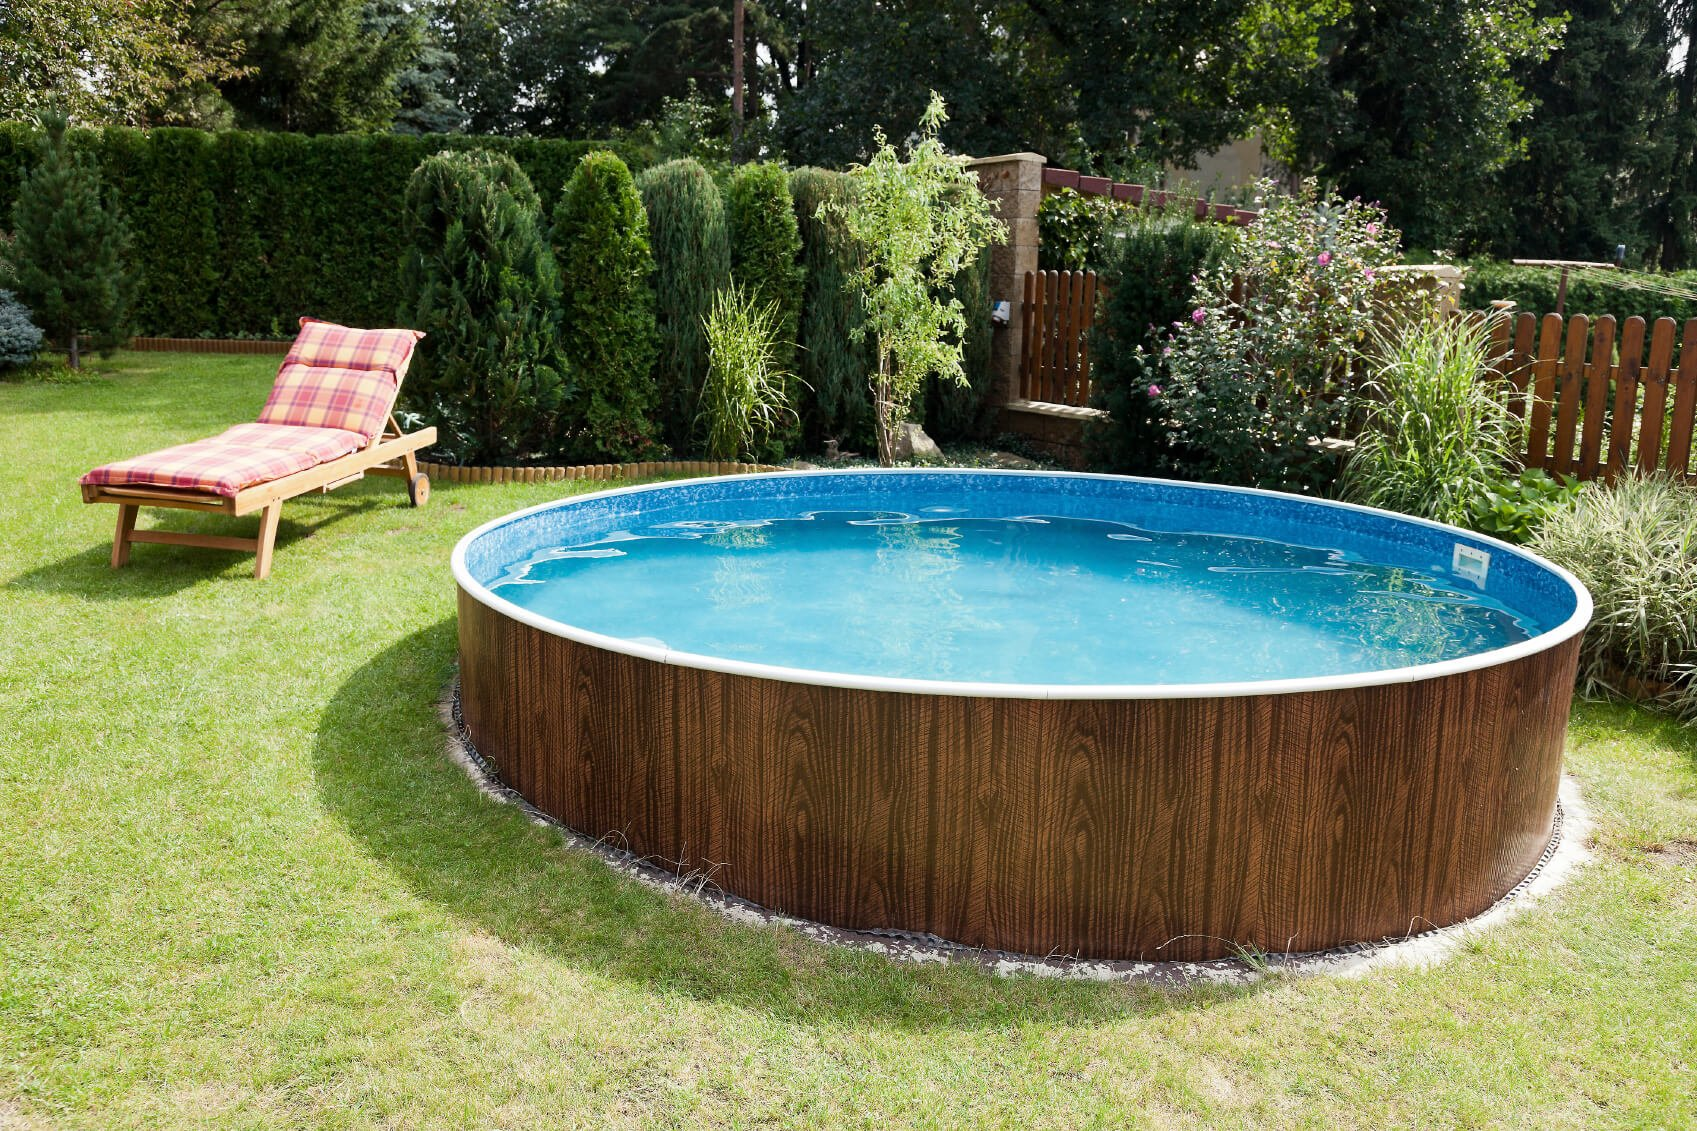 The pool with the deckchair